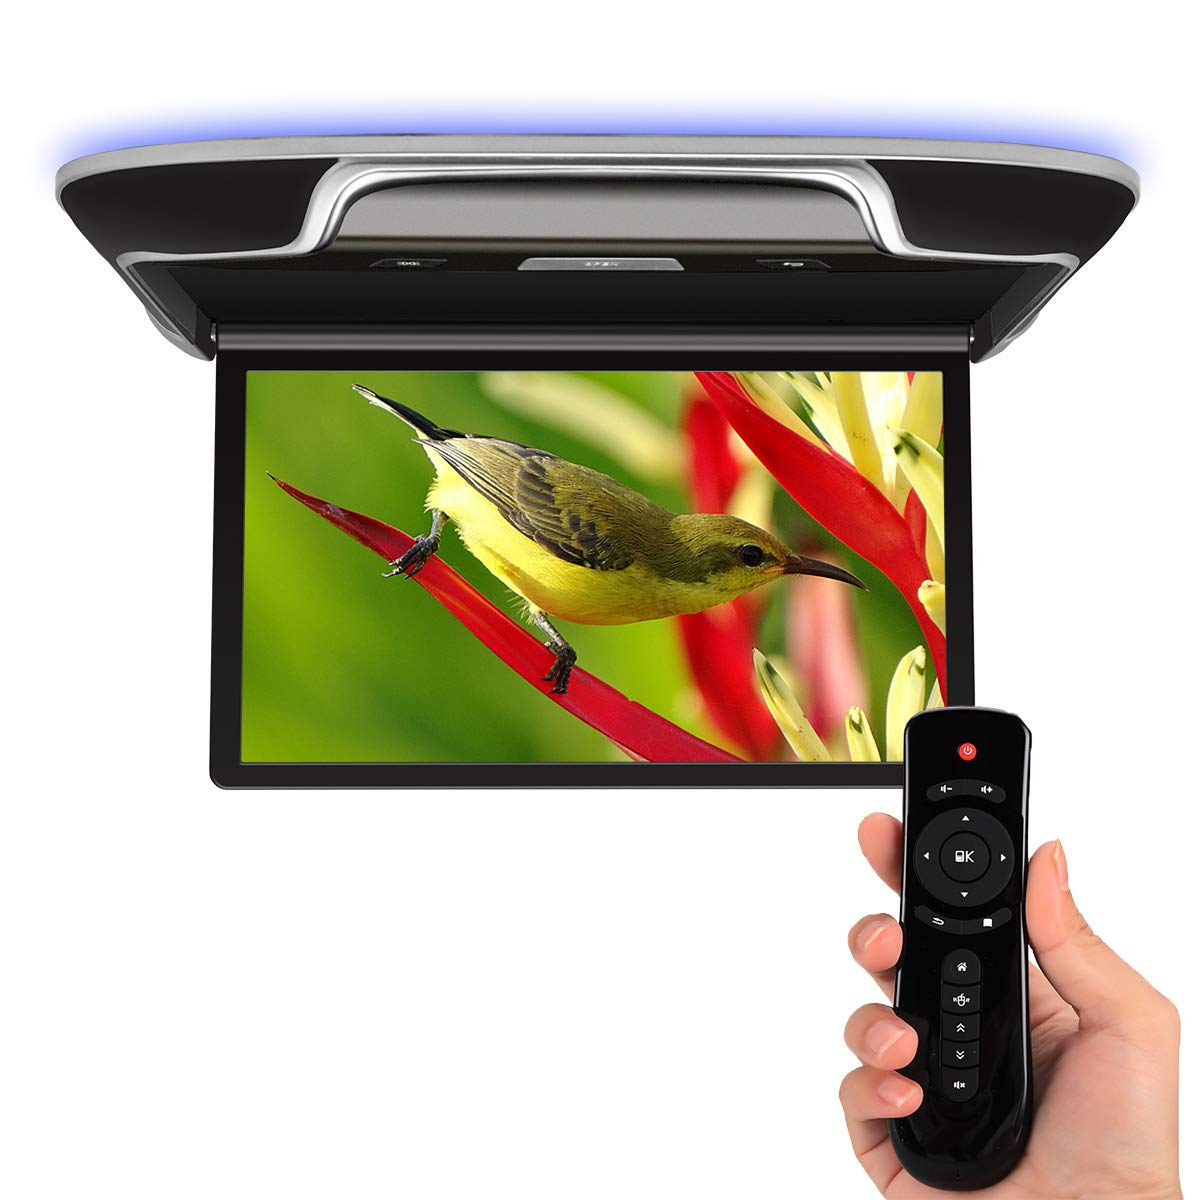 Android 13'' Overhead Flip Down Video Monitor TV Car Multimedia Player IPS 4K, Support WiFi, FM, Bluetooth, HDMI, USB, SD Card - Black